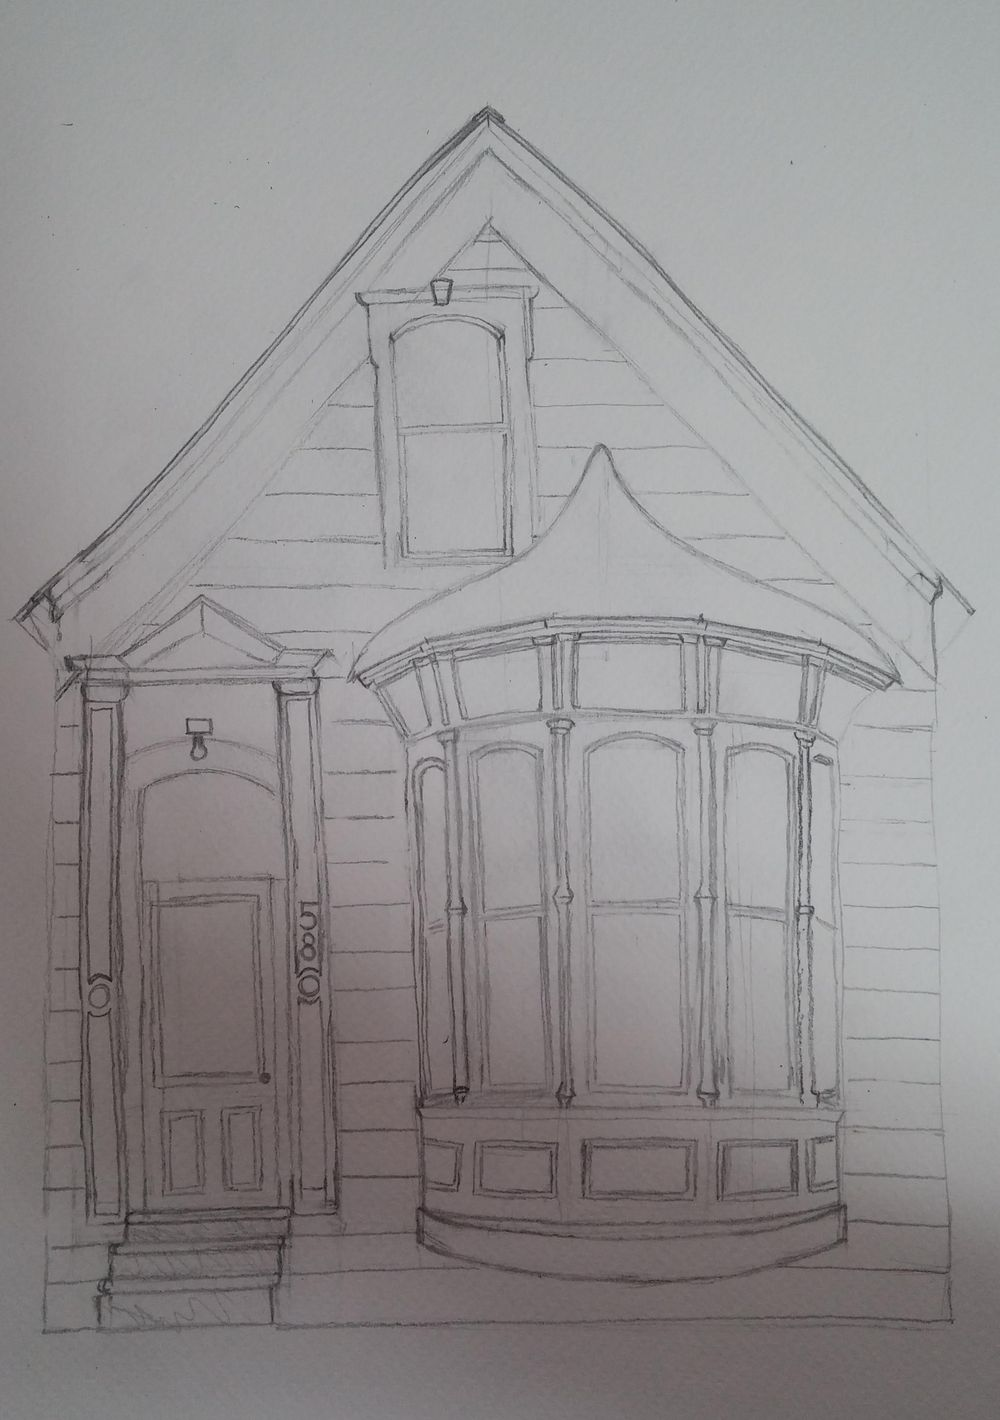 A Restoration of Old and Abandoned Houses - image 6 - student project